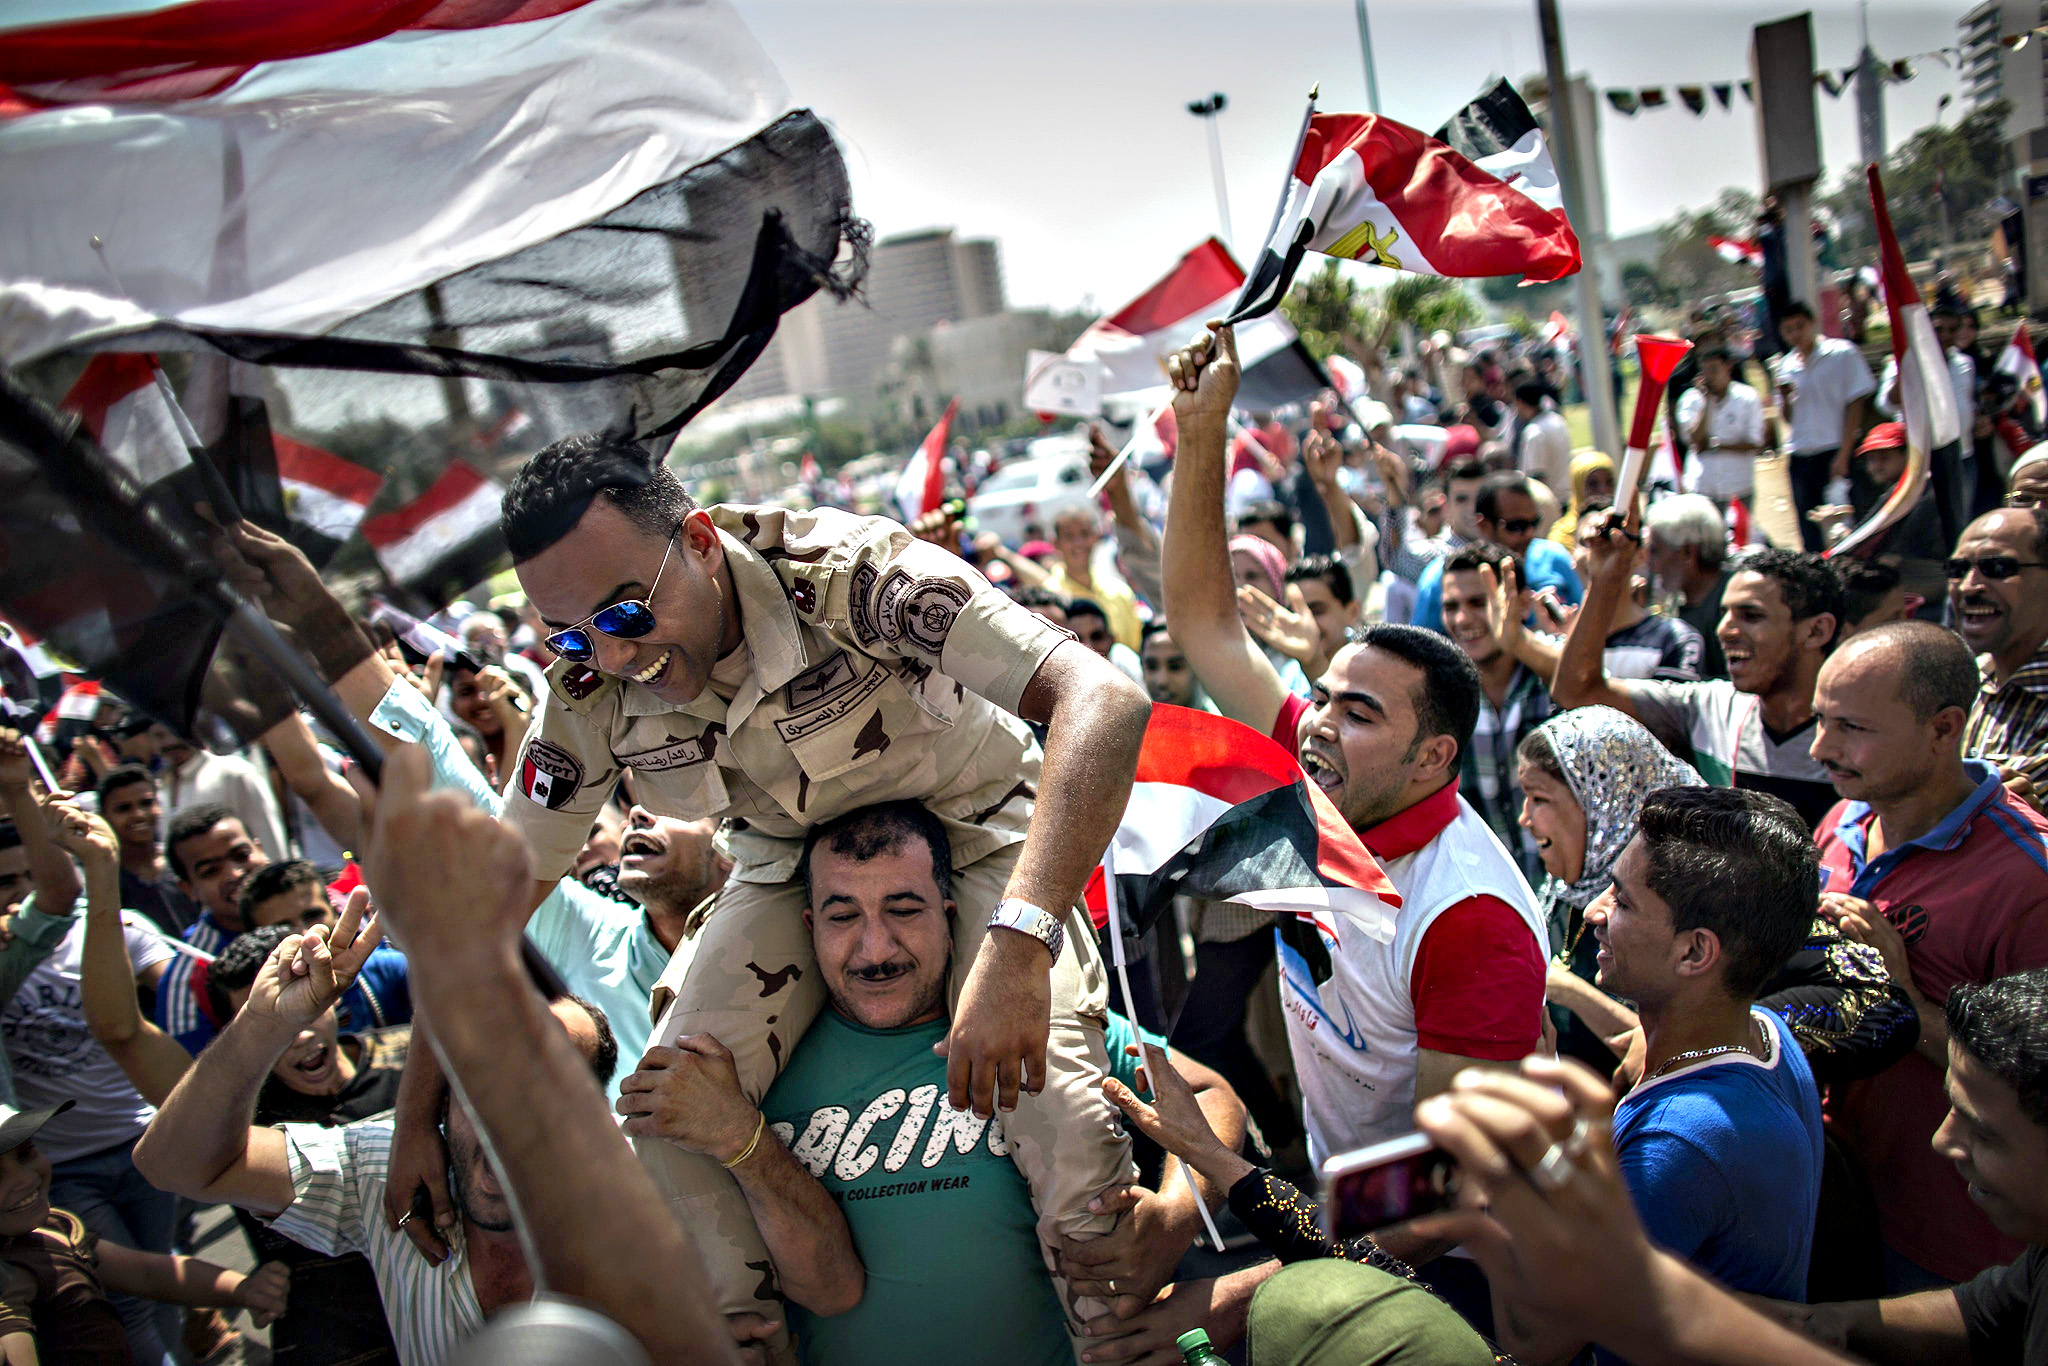 An Egyptian carries a member of the armed forces on his shoulders during celebrations of the opening of the new addition to the Suez Canal, in Tahrir Square, downtown Cairo, Egypt, 06 August 2015. The latest addition to the canal comes in at 72 kilometers (44 miles), was completed in under a year at an estimated cost of 8.5 billion US dollars, and was opened to shipping 06 August. According to the Egyptian Government the additional chanel cuts journey times from an estimated 18-14 hours to 11 hours, making it the fastest shipping lane of its kind worldwide, and will double revenue, though their figures have been widely disputed by international economists